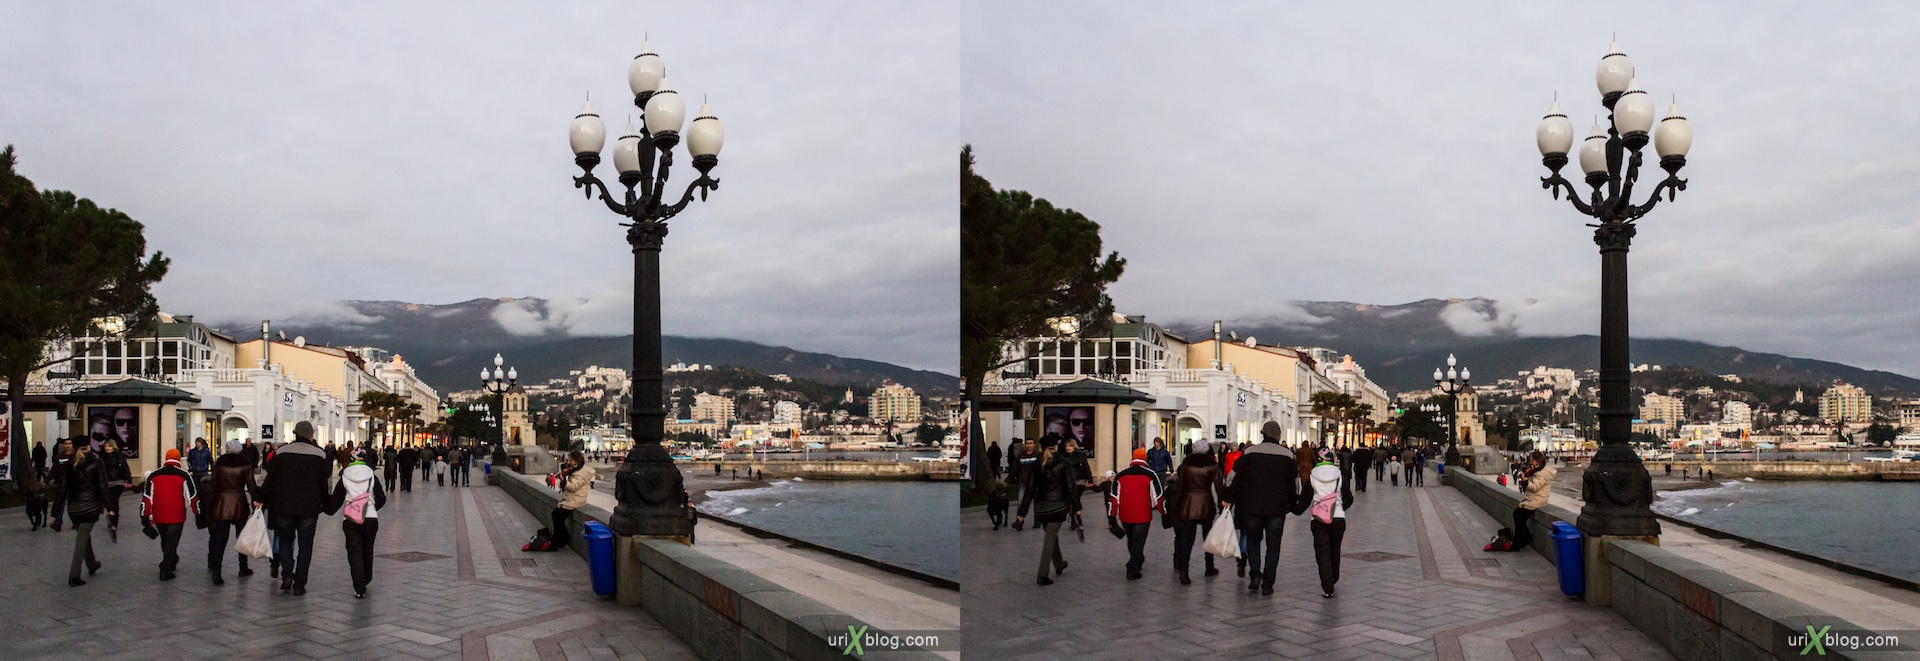 2012, Imeni Lenina embankment, beach, Yalta, sea, evening, coast city, Crimea, Ukraine, 3D, stereo pair, cross-eyed, crossview, cross view stereo pair, stereoscopic